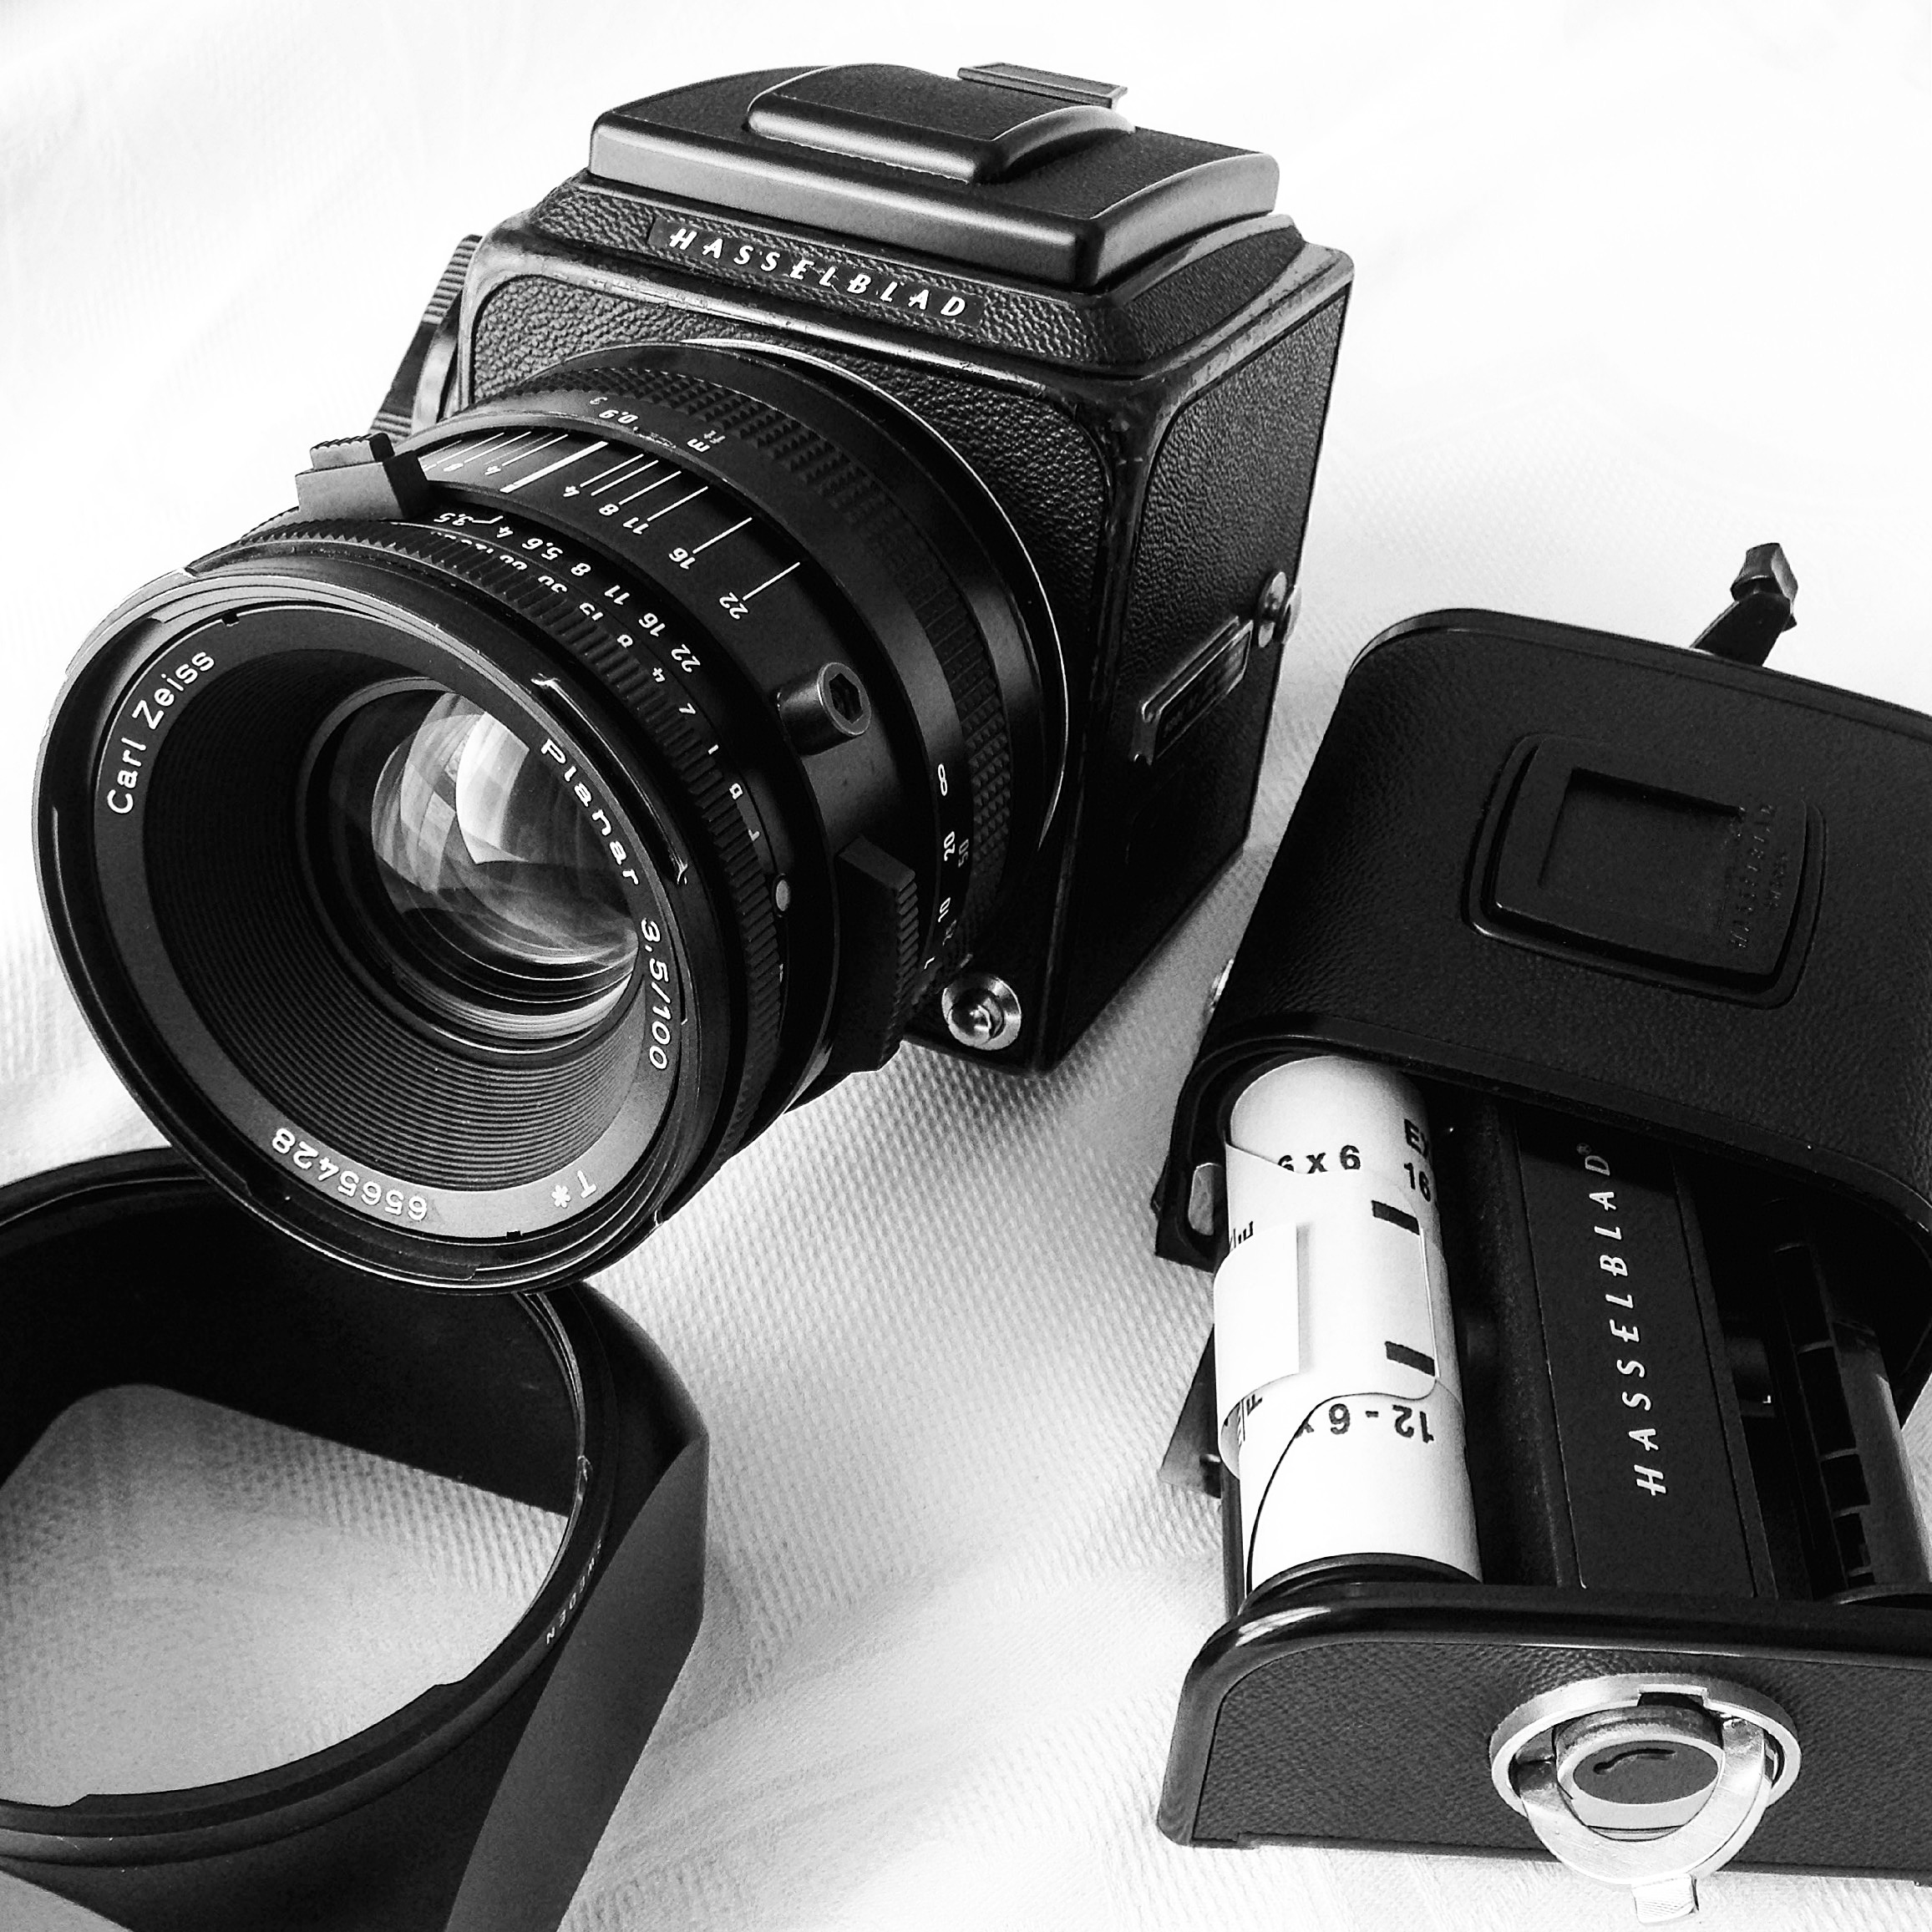 Hasselblad 500cm loading film - 120 film and photo of hasselblad film back with Zeiss 100mm f3.5 lens